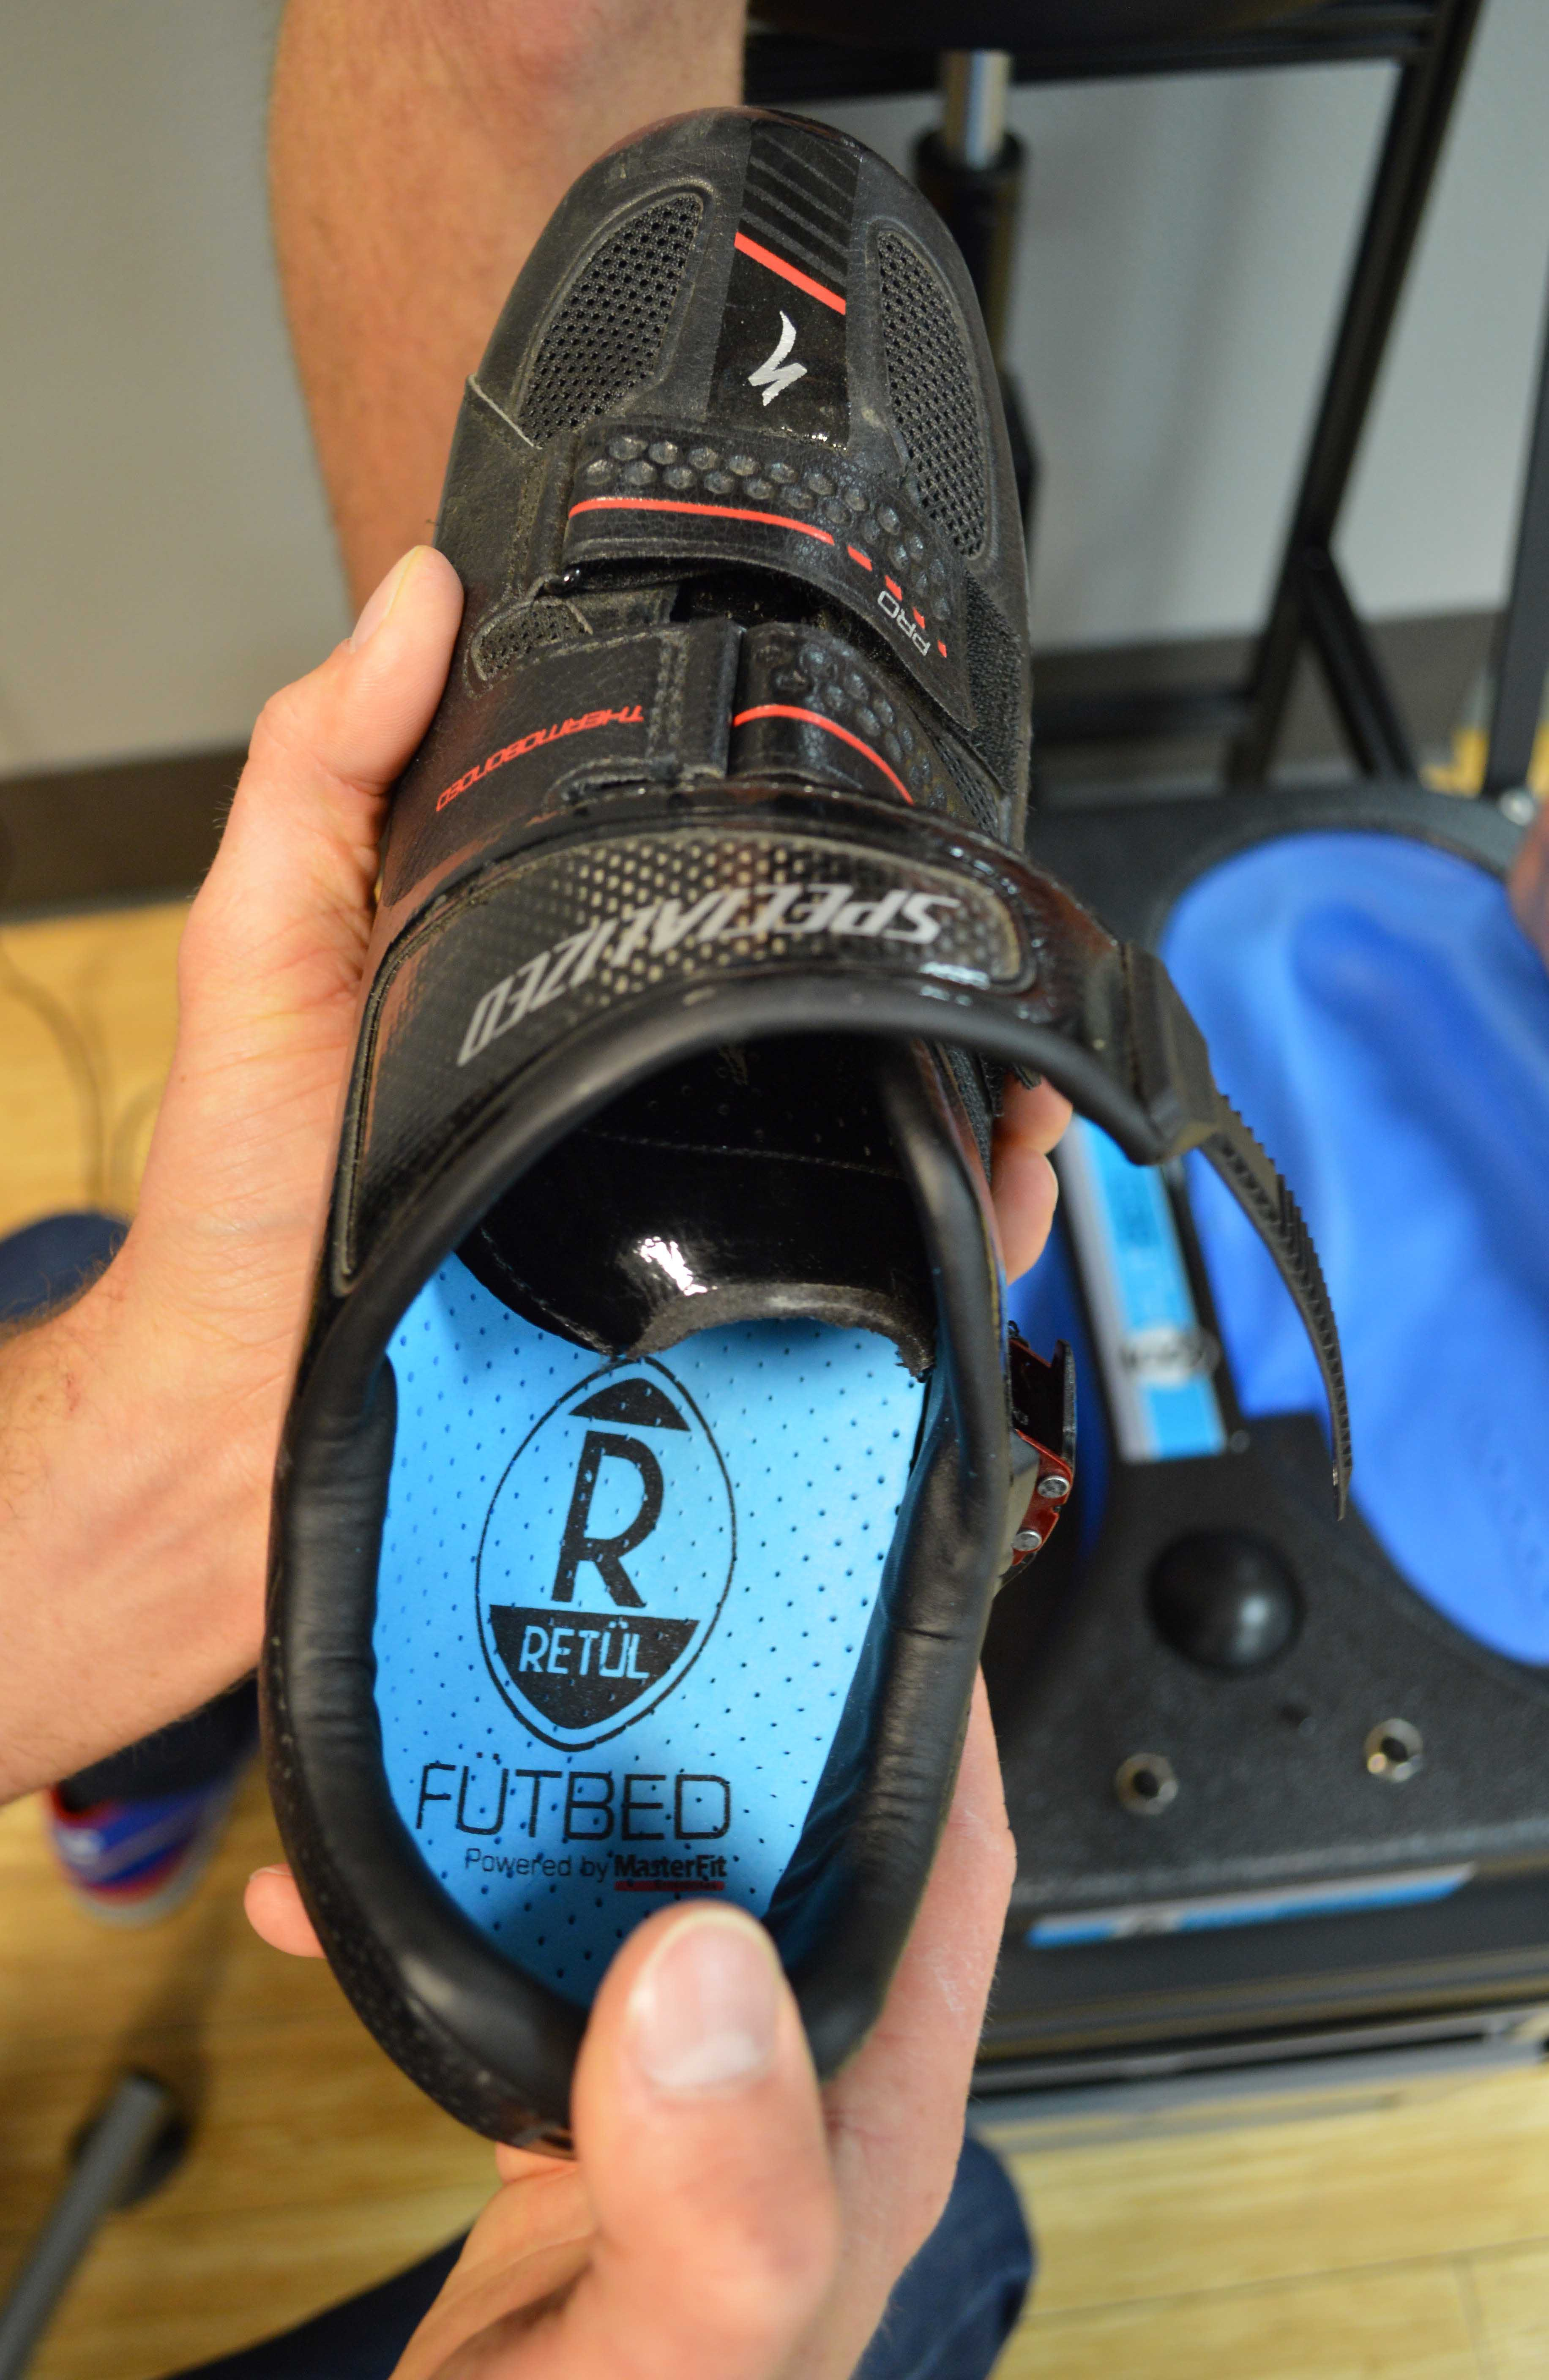 Fütbed Cycling Insoles